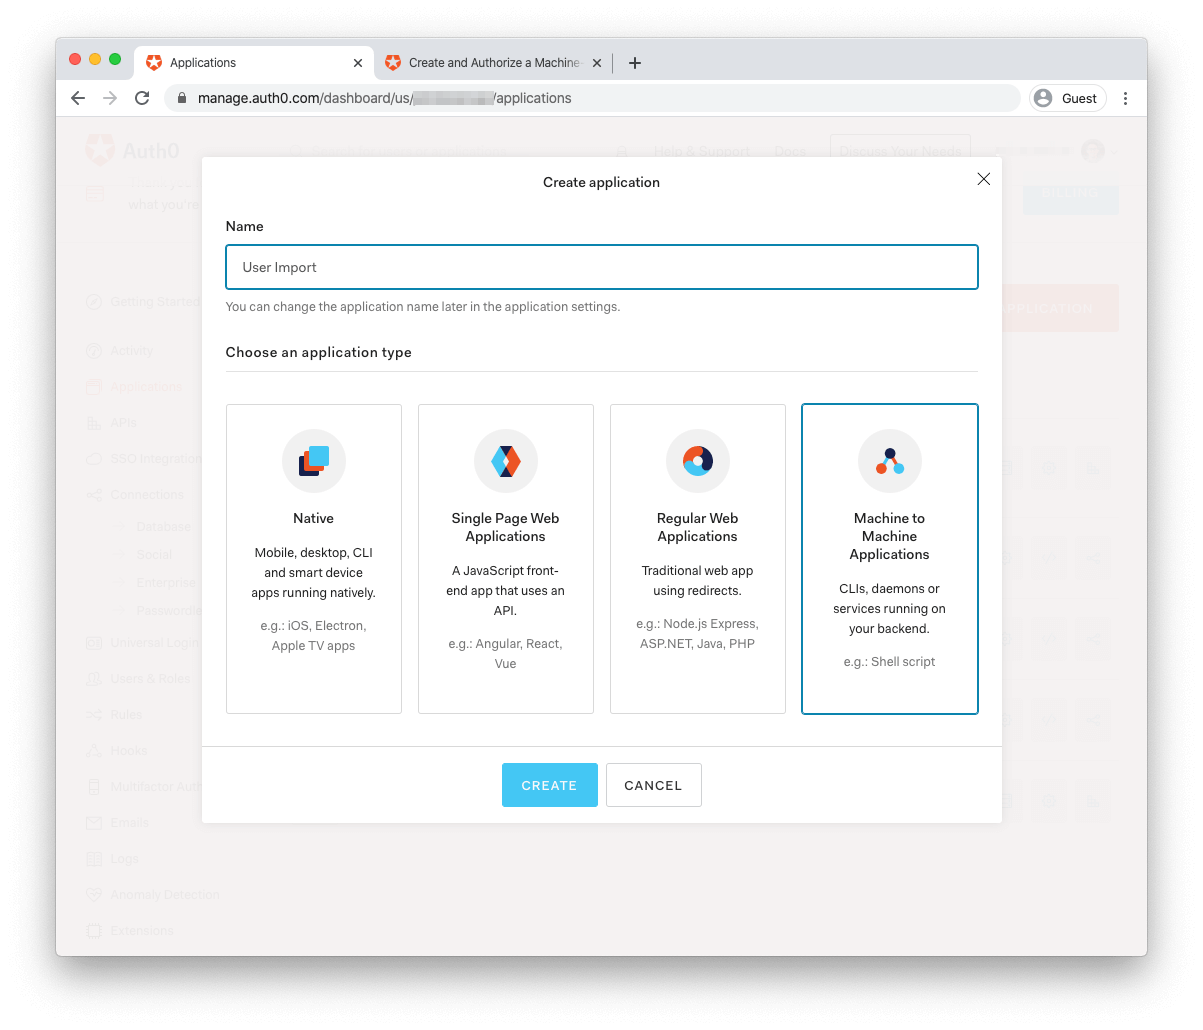 Auth0 Machine to Machine Application creation form